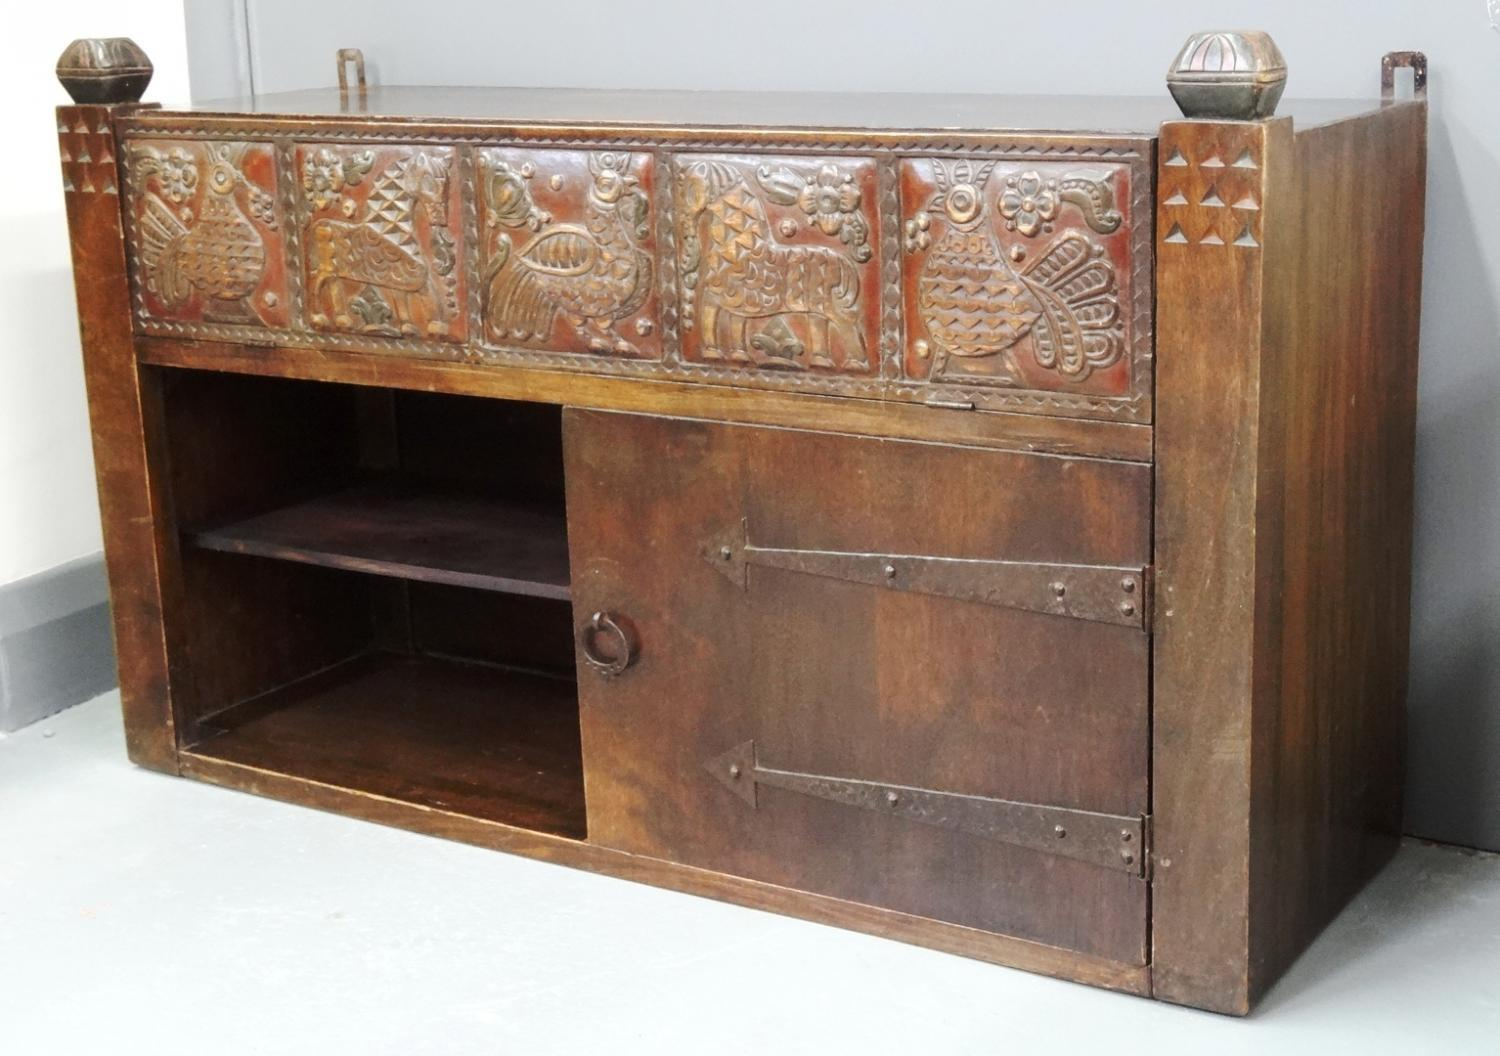 Russian Arts & Crafts cabinet